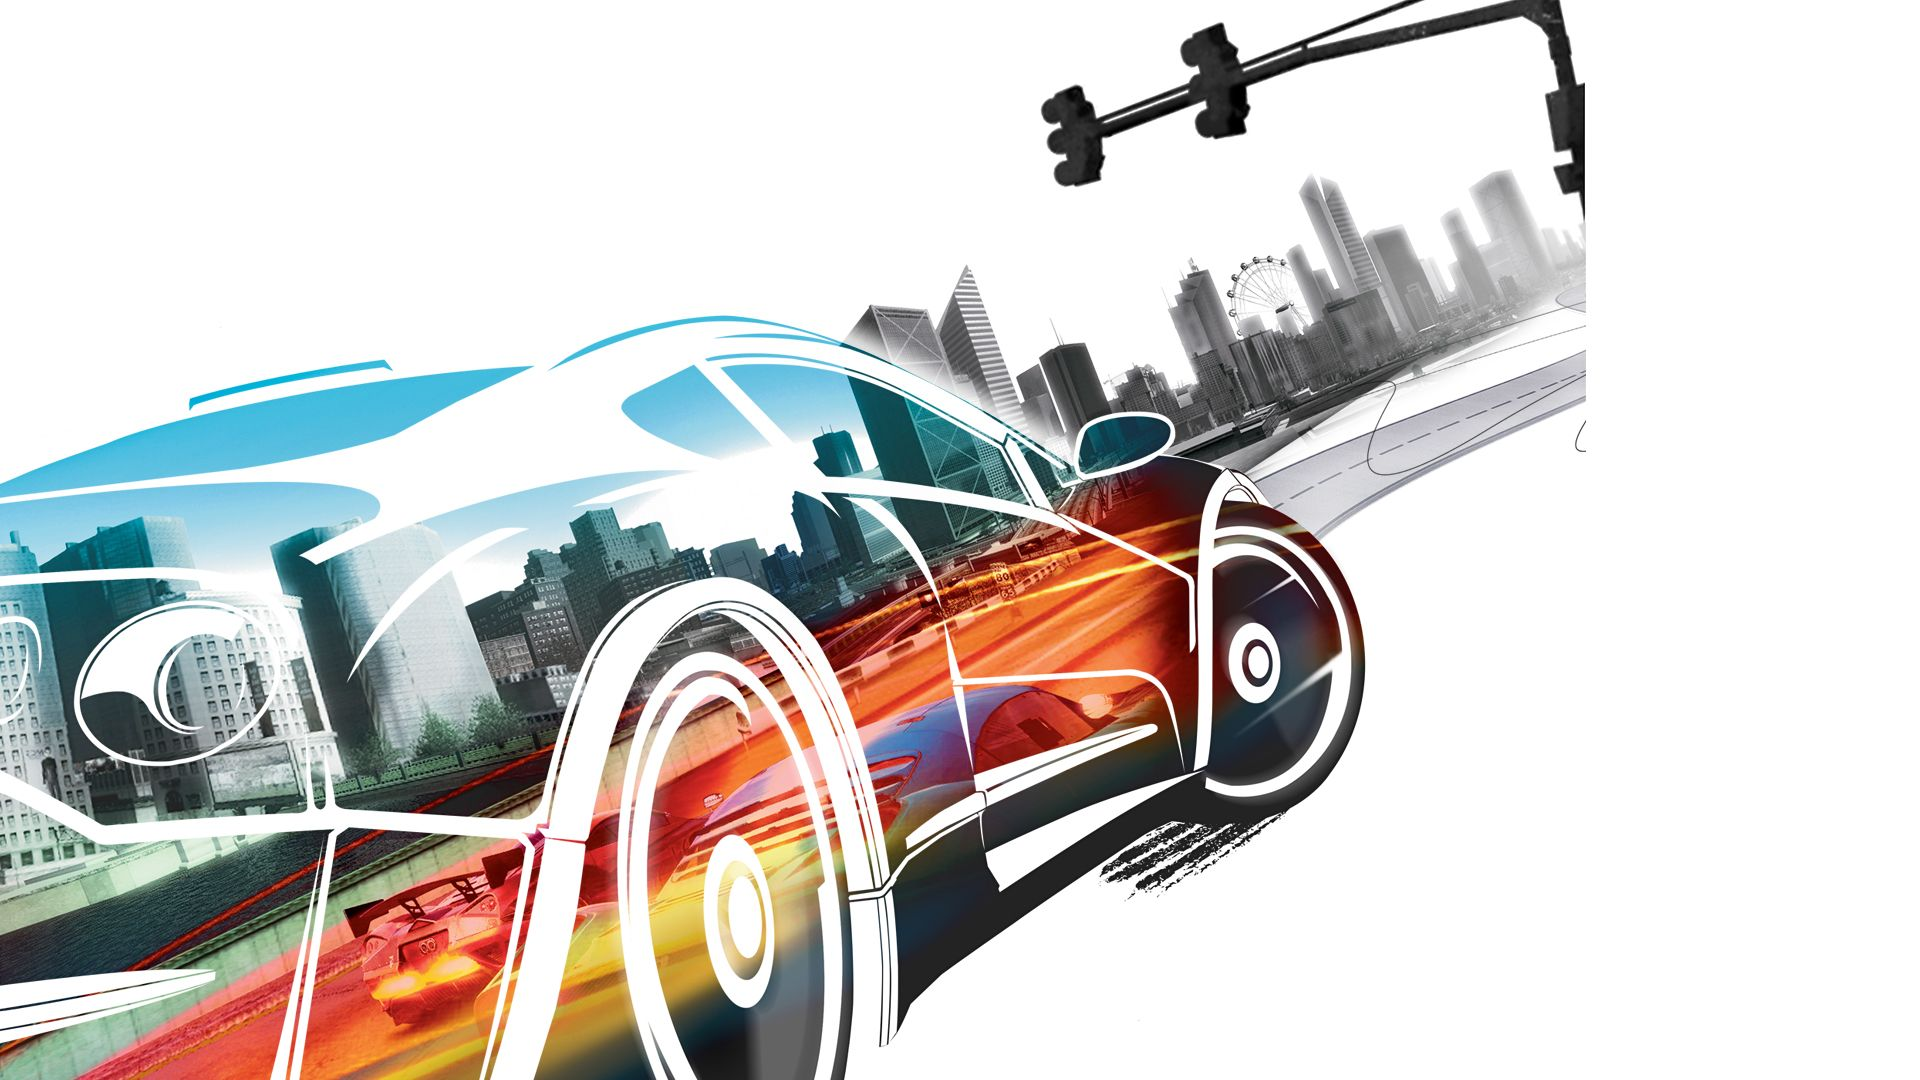 Burnout Paradise HD Remaster seemingly coming to PS4 in Japan